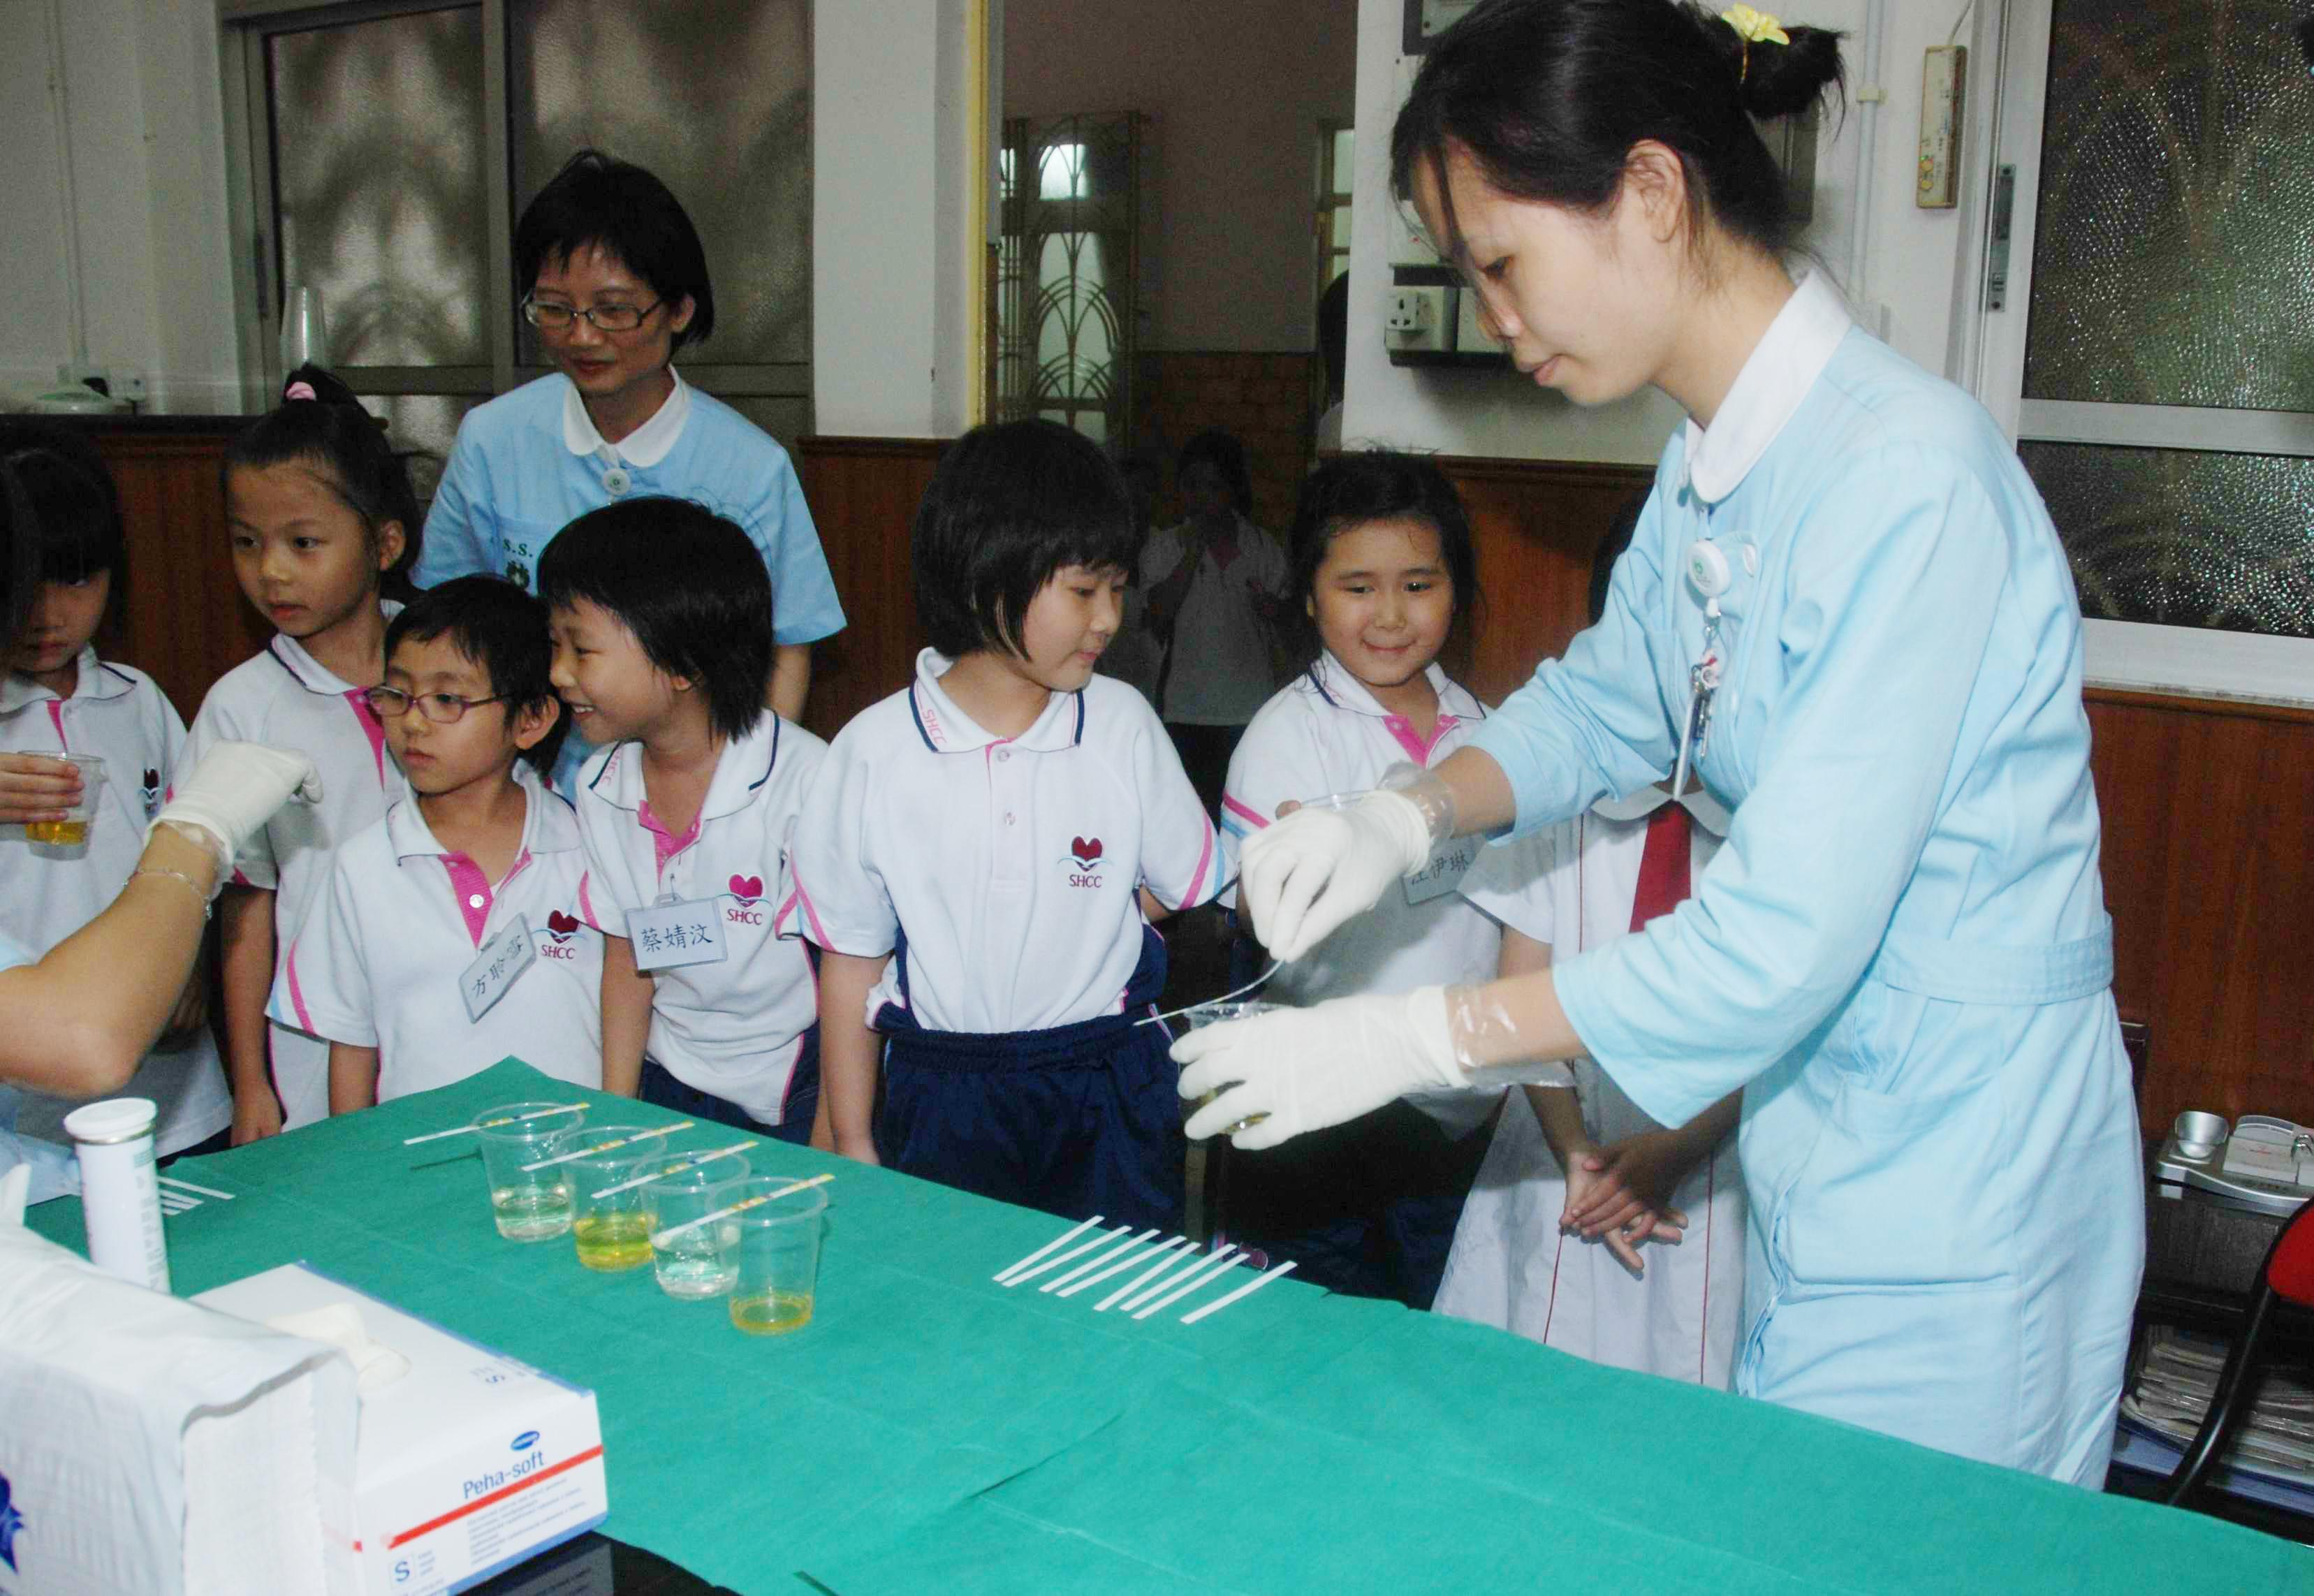 Macau says no kidney problems found in students tested after drinking milk products